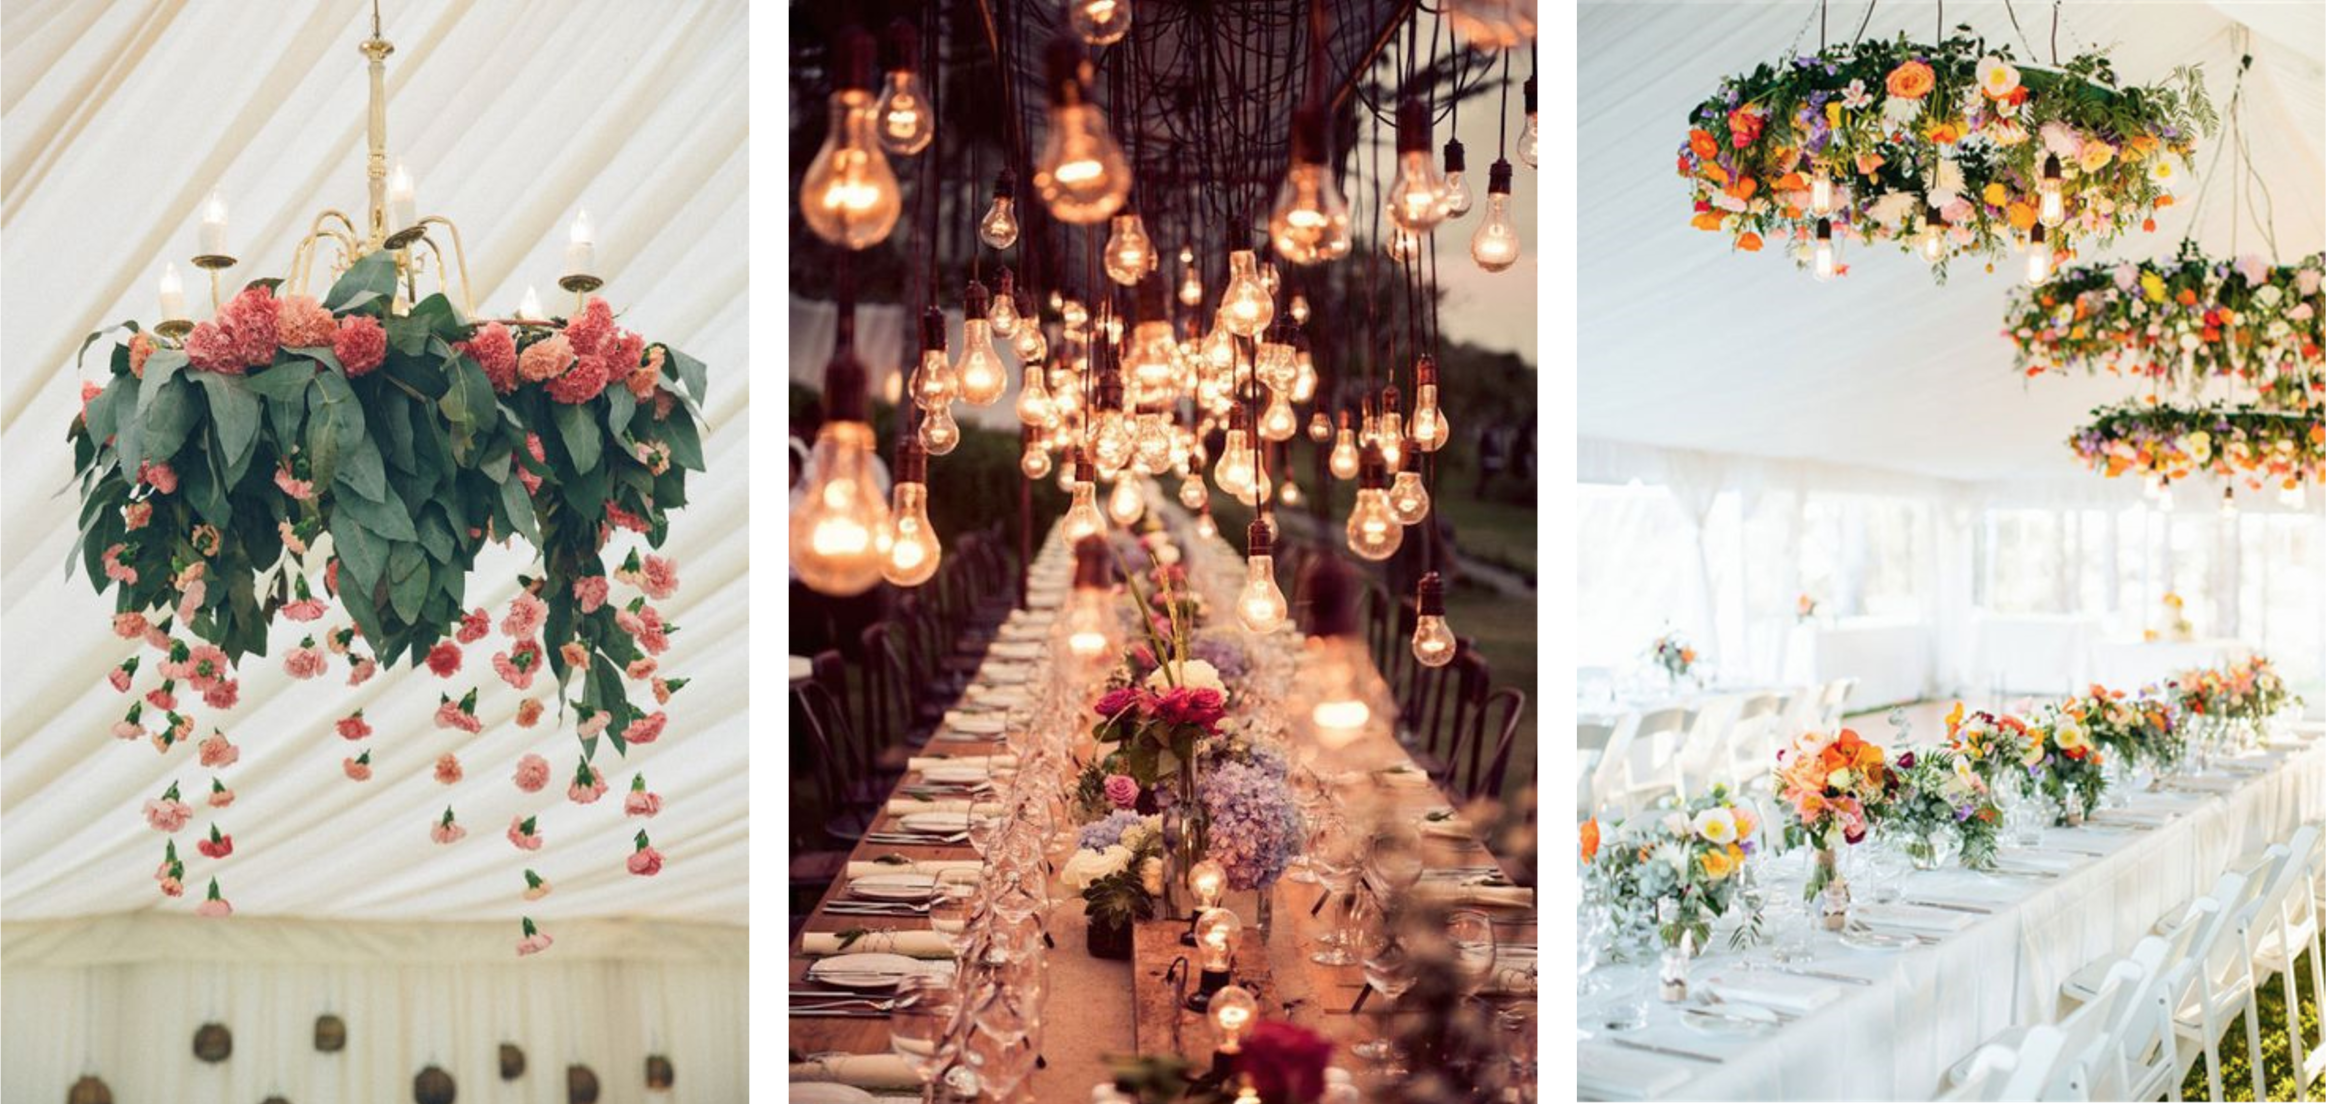 hanging flowers and lights wedding styling